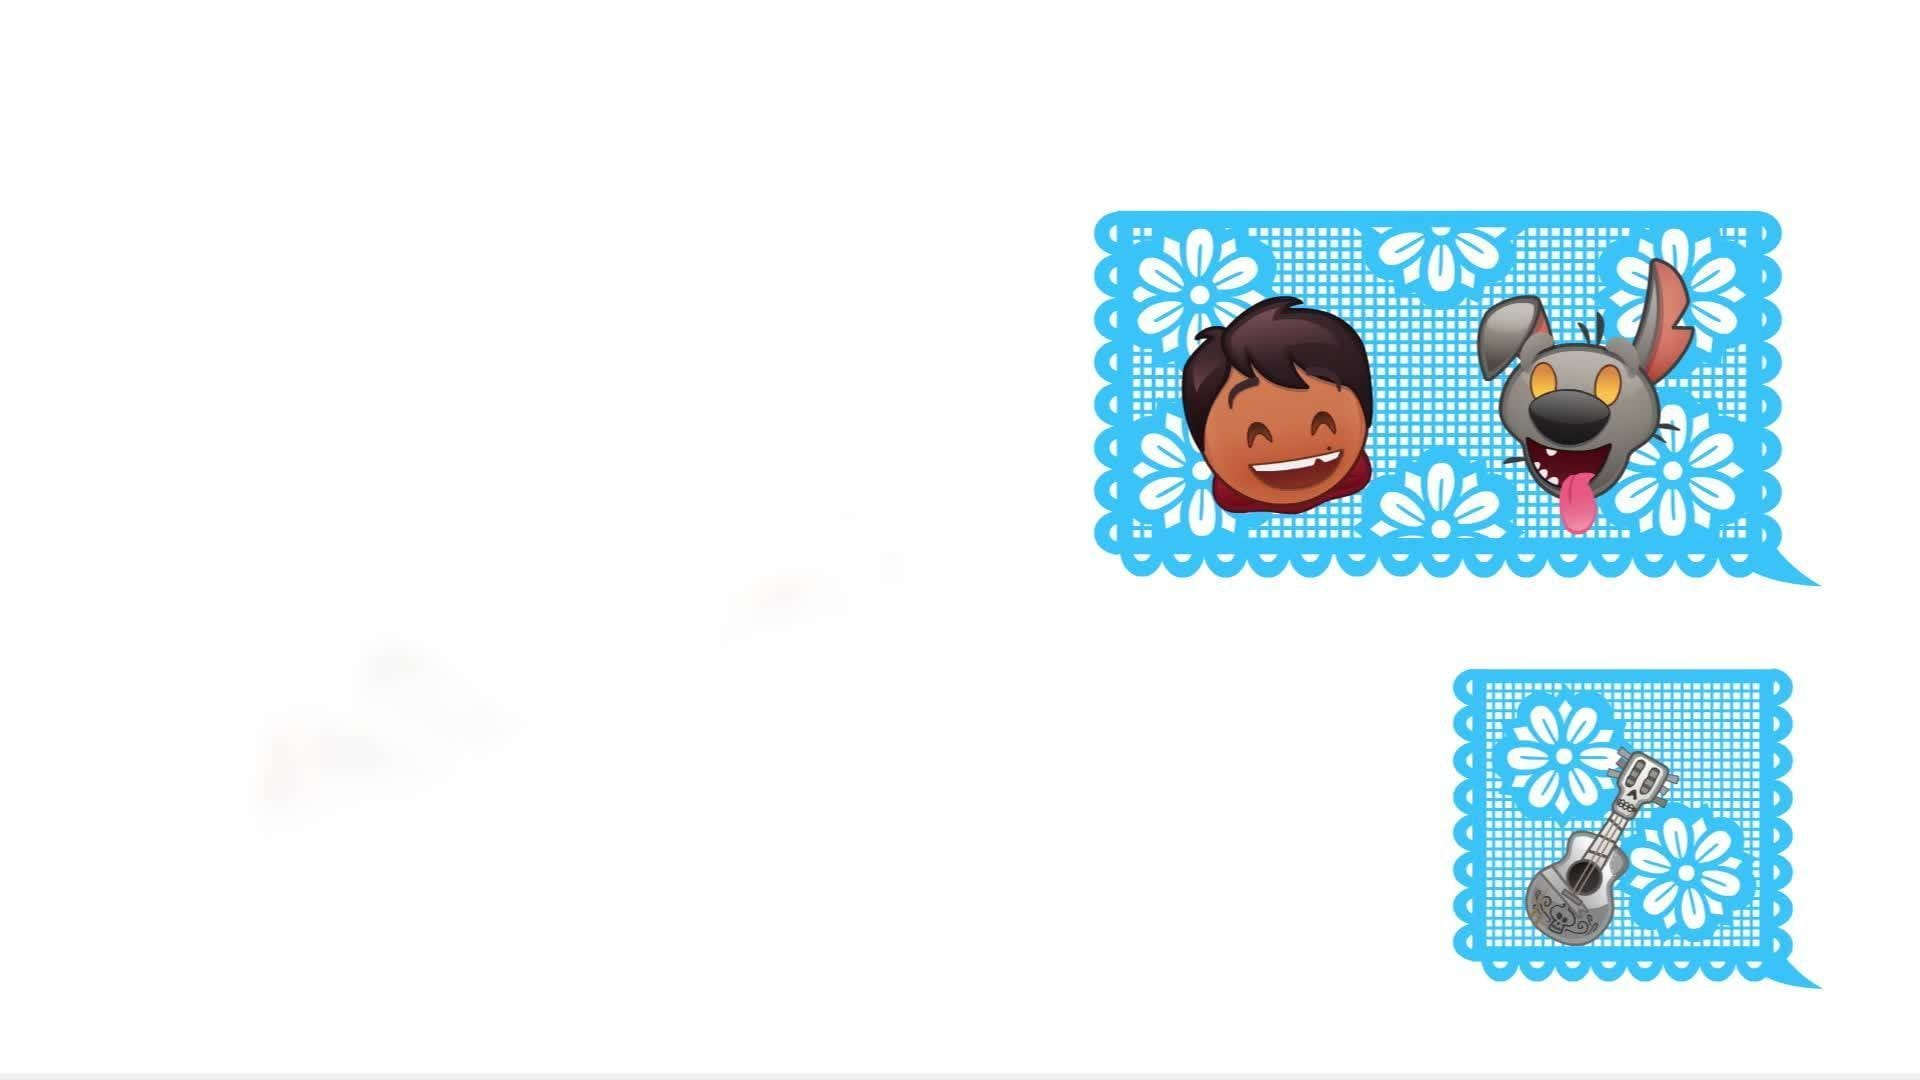 Coco | Disney As Told By Emoji